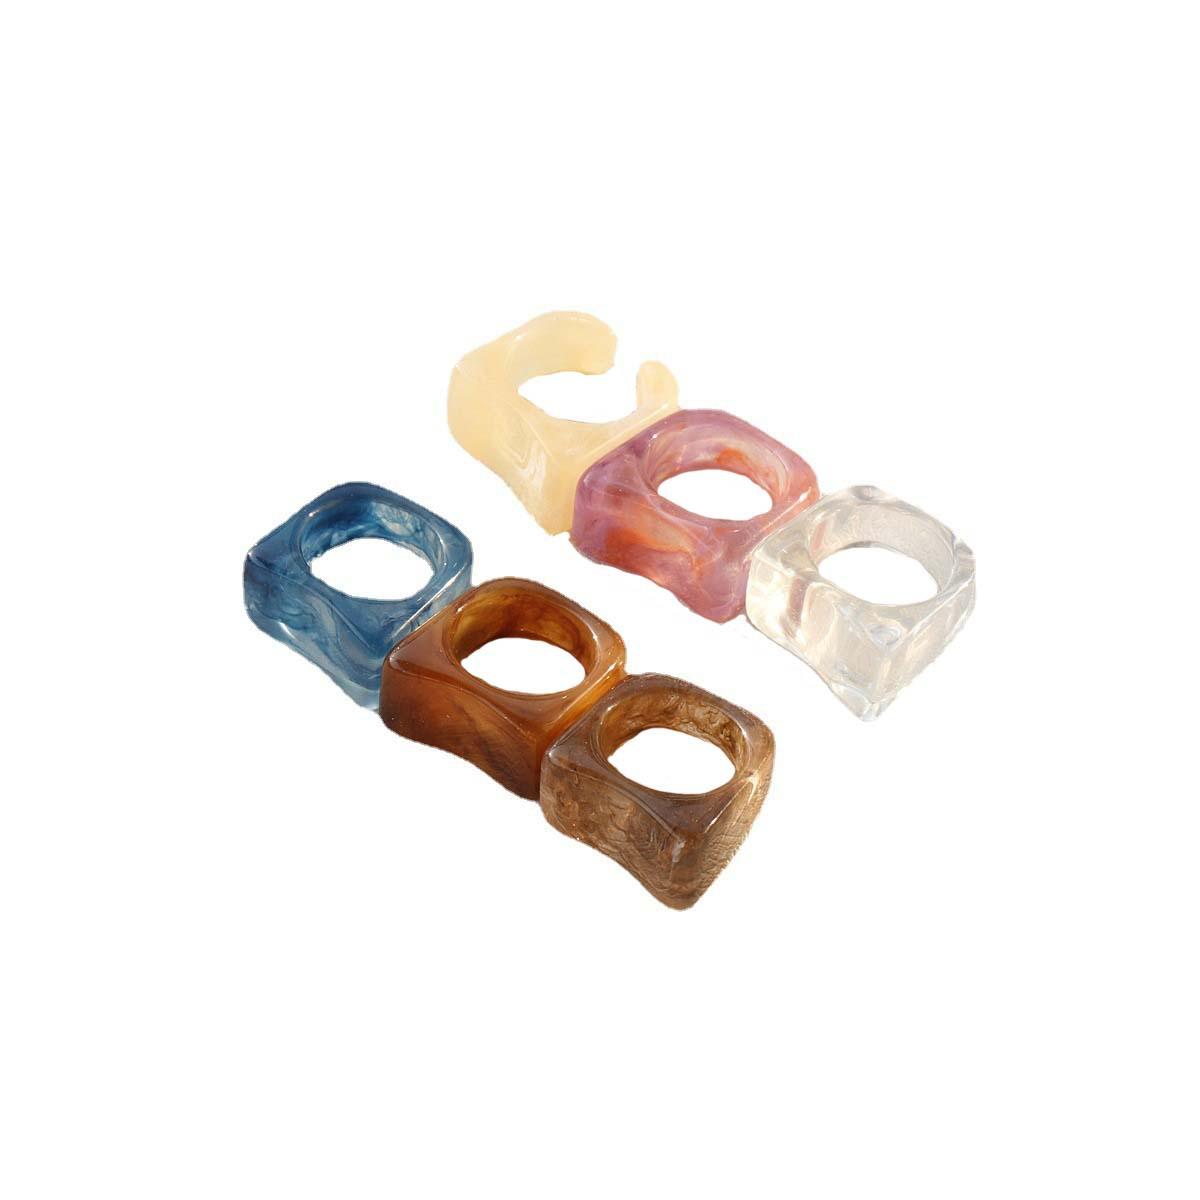 Trendy Resin Ring for Chic Fashion Accessories